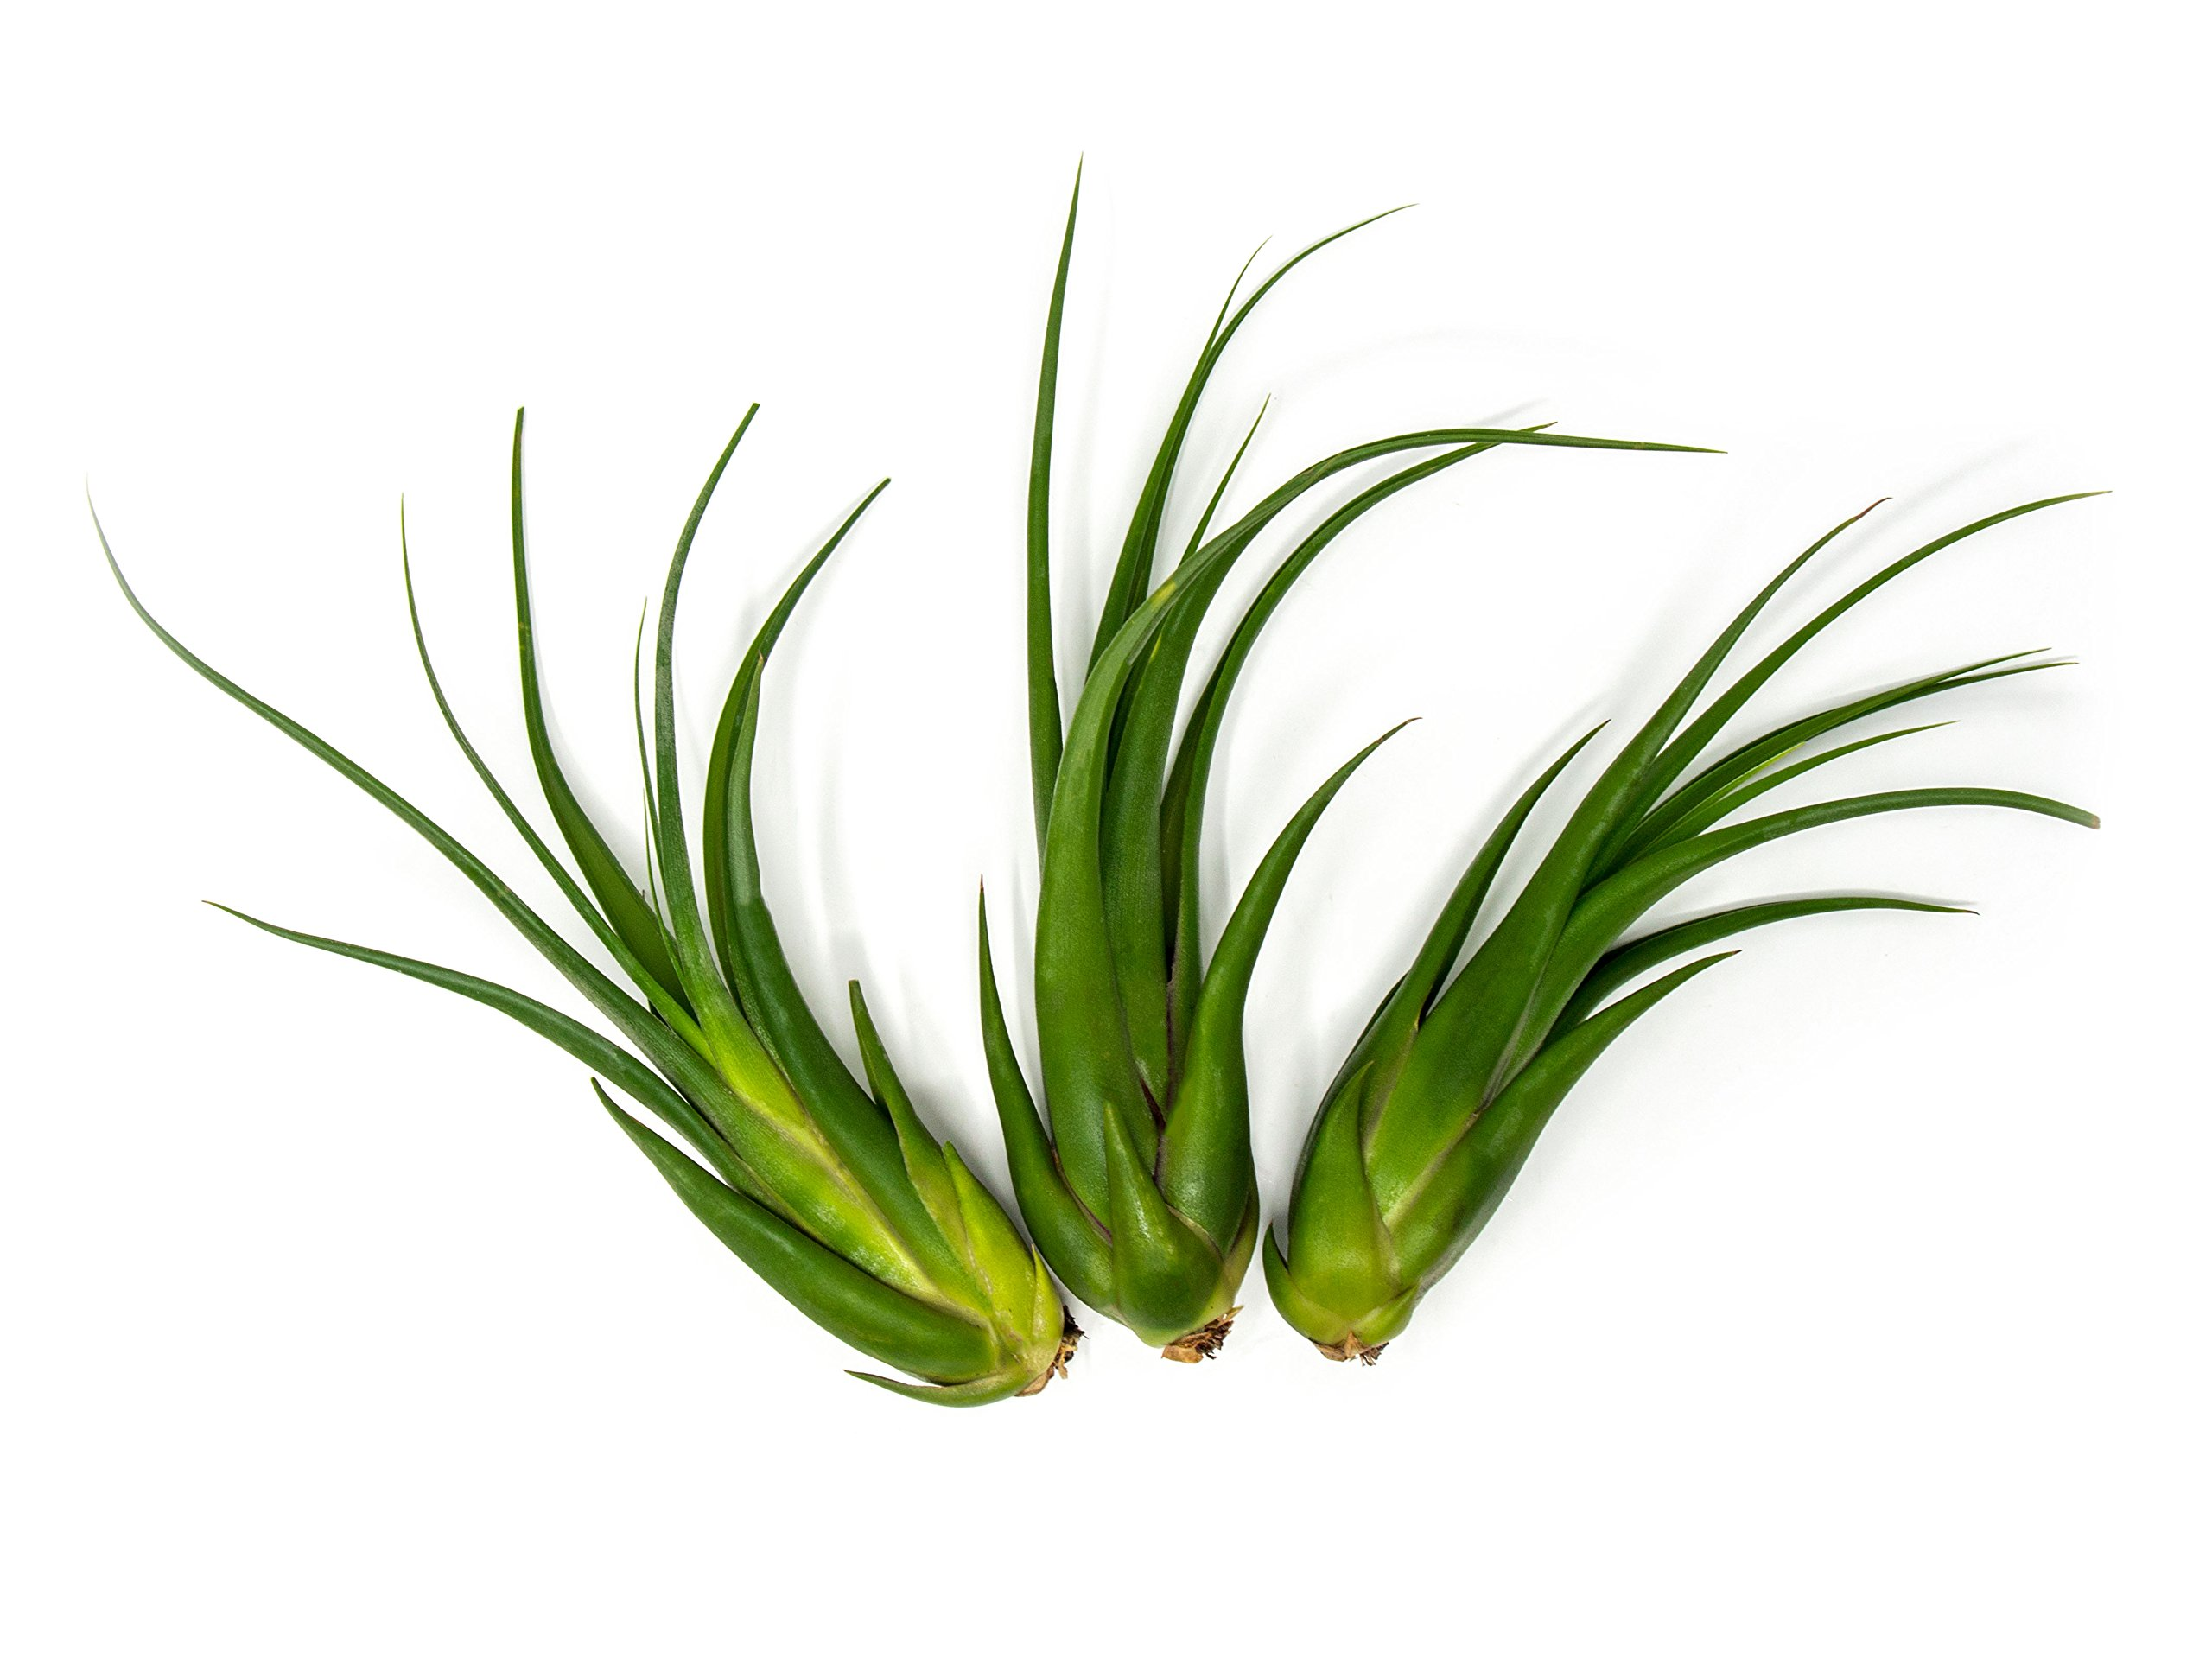 6 GIANT Circinata Air Plants - 7 to 9 inch Tillandsia - Live House Plants for Sale - Indoor Terrarium Air Plants